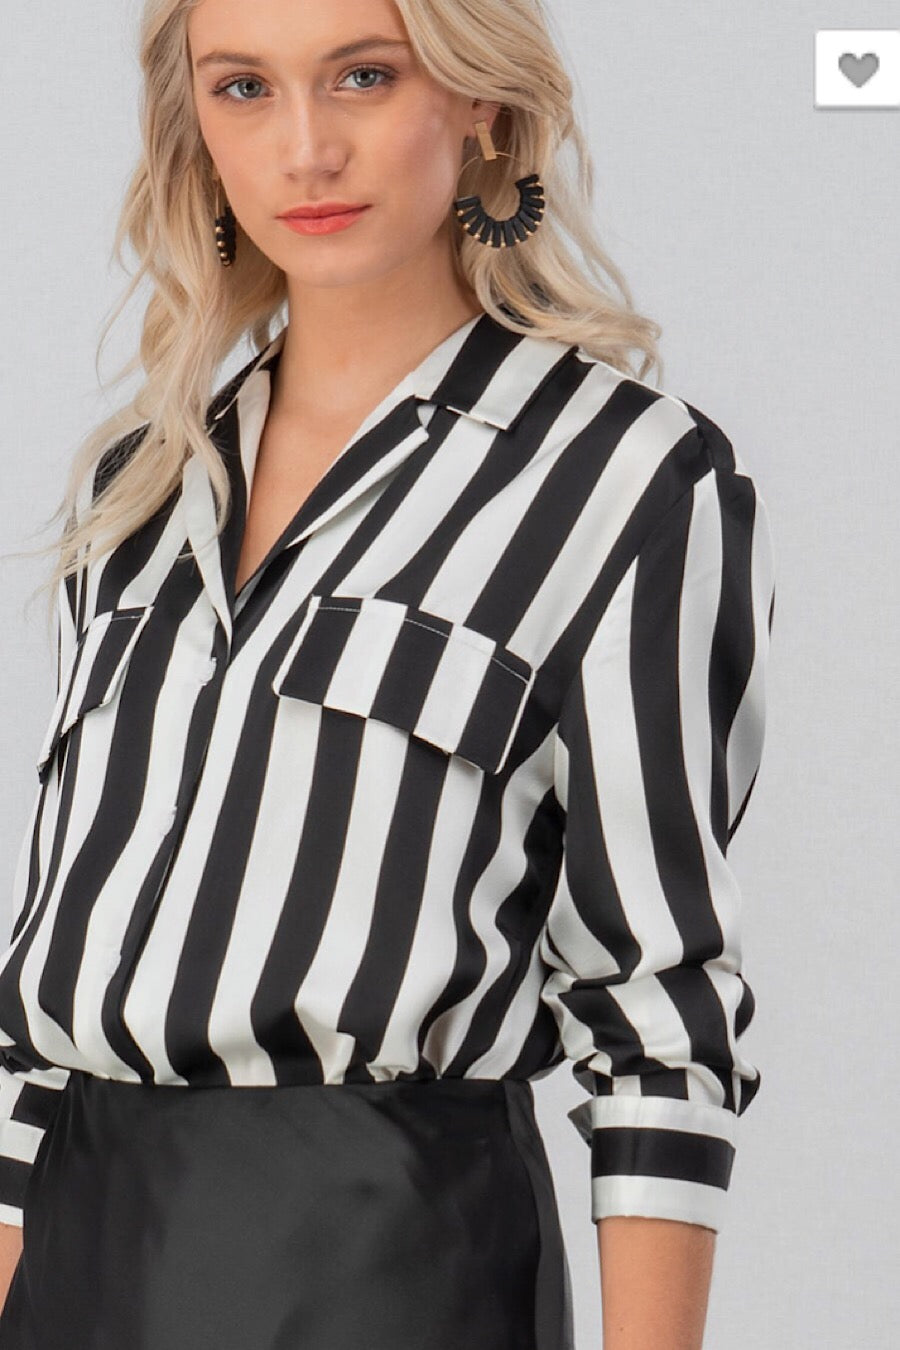 Monochrome Blouse